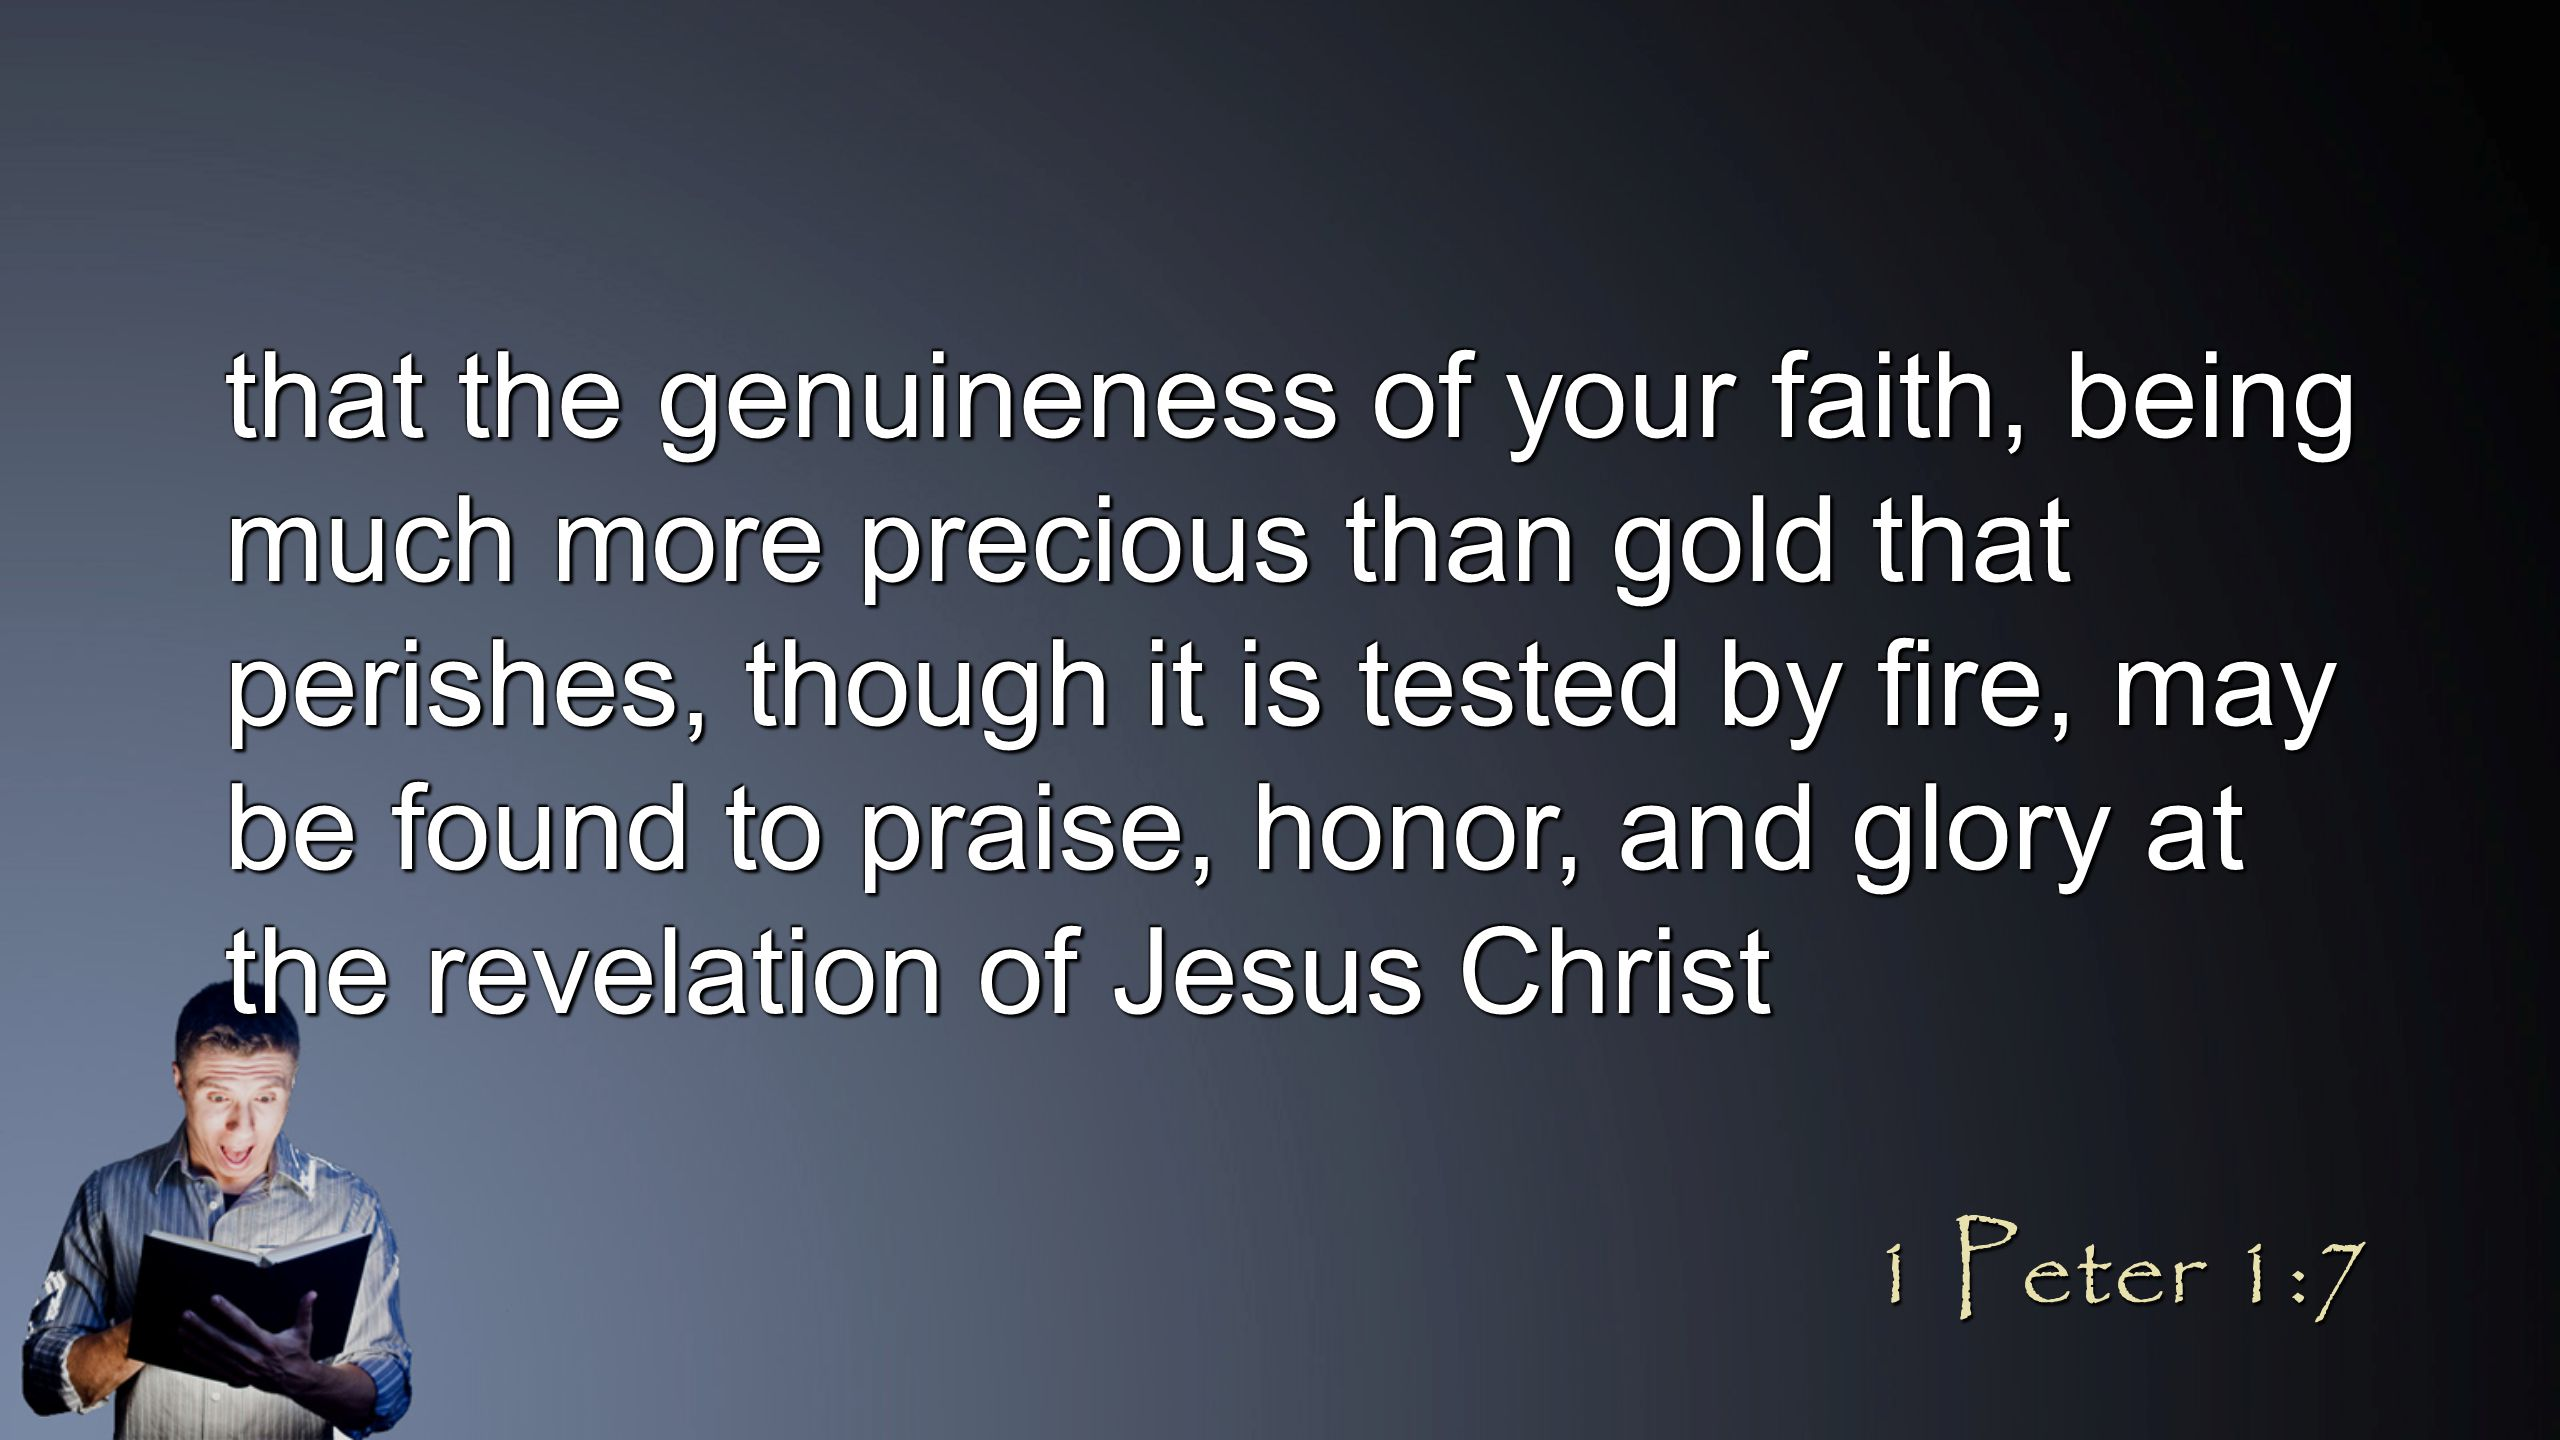 that the genuineness of your faith, being much more precious than gold that perishes, though it is tested by fire, may be found to praise, honor, and glory at the revelation of Jesus Christ 1 Peter 1:7